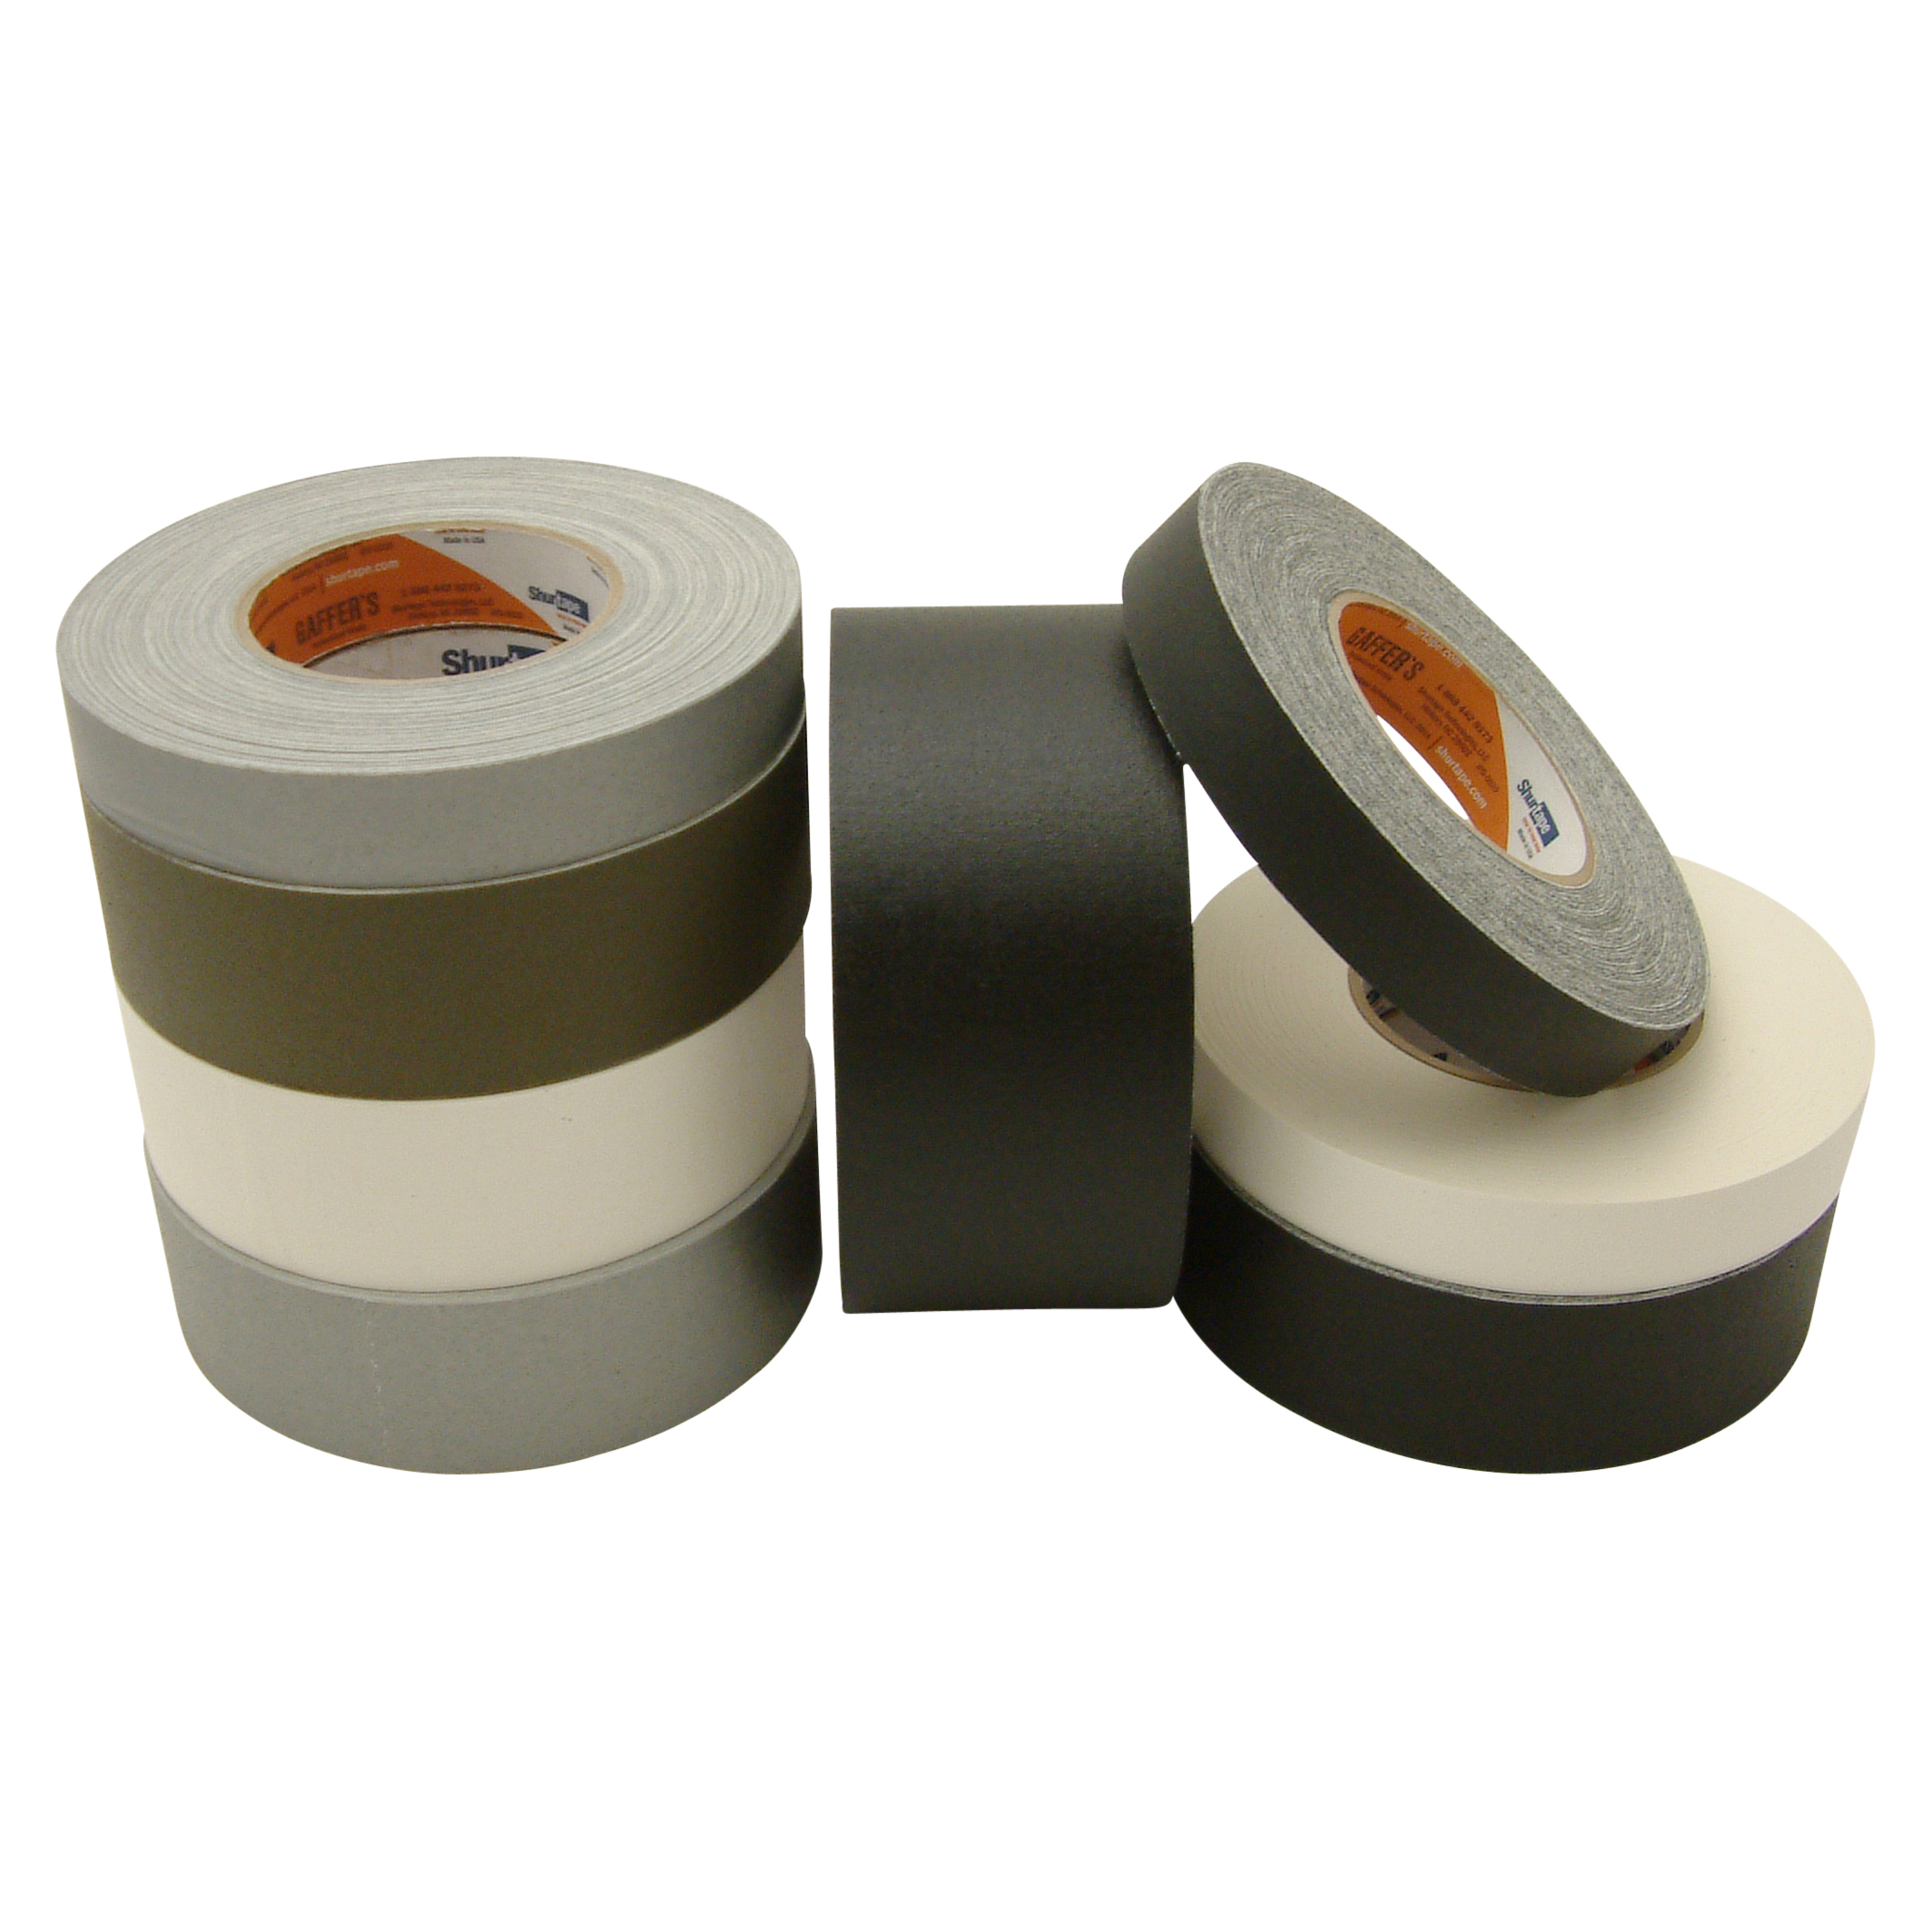 Shurtape P-672 Professional Grade Gaffers Tape: 2 in. x 50 yds. (Olive Drab)